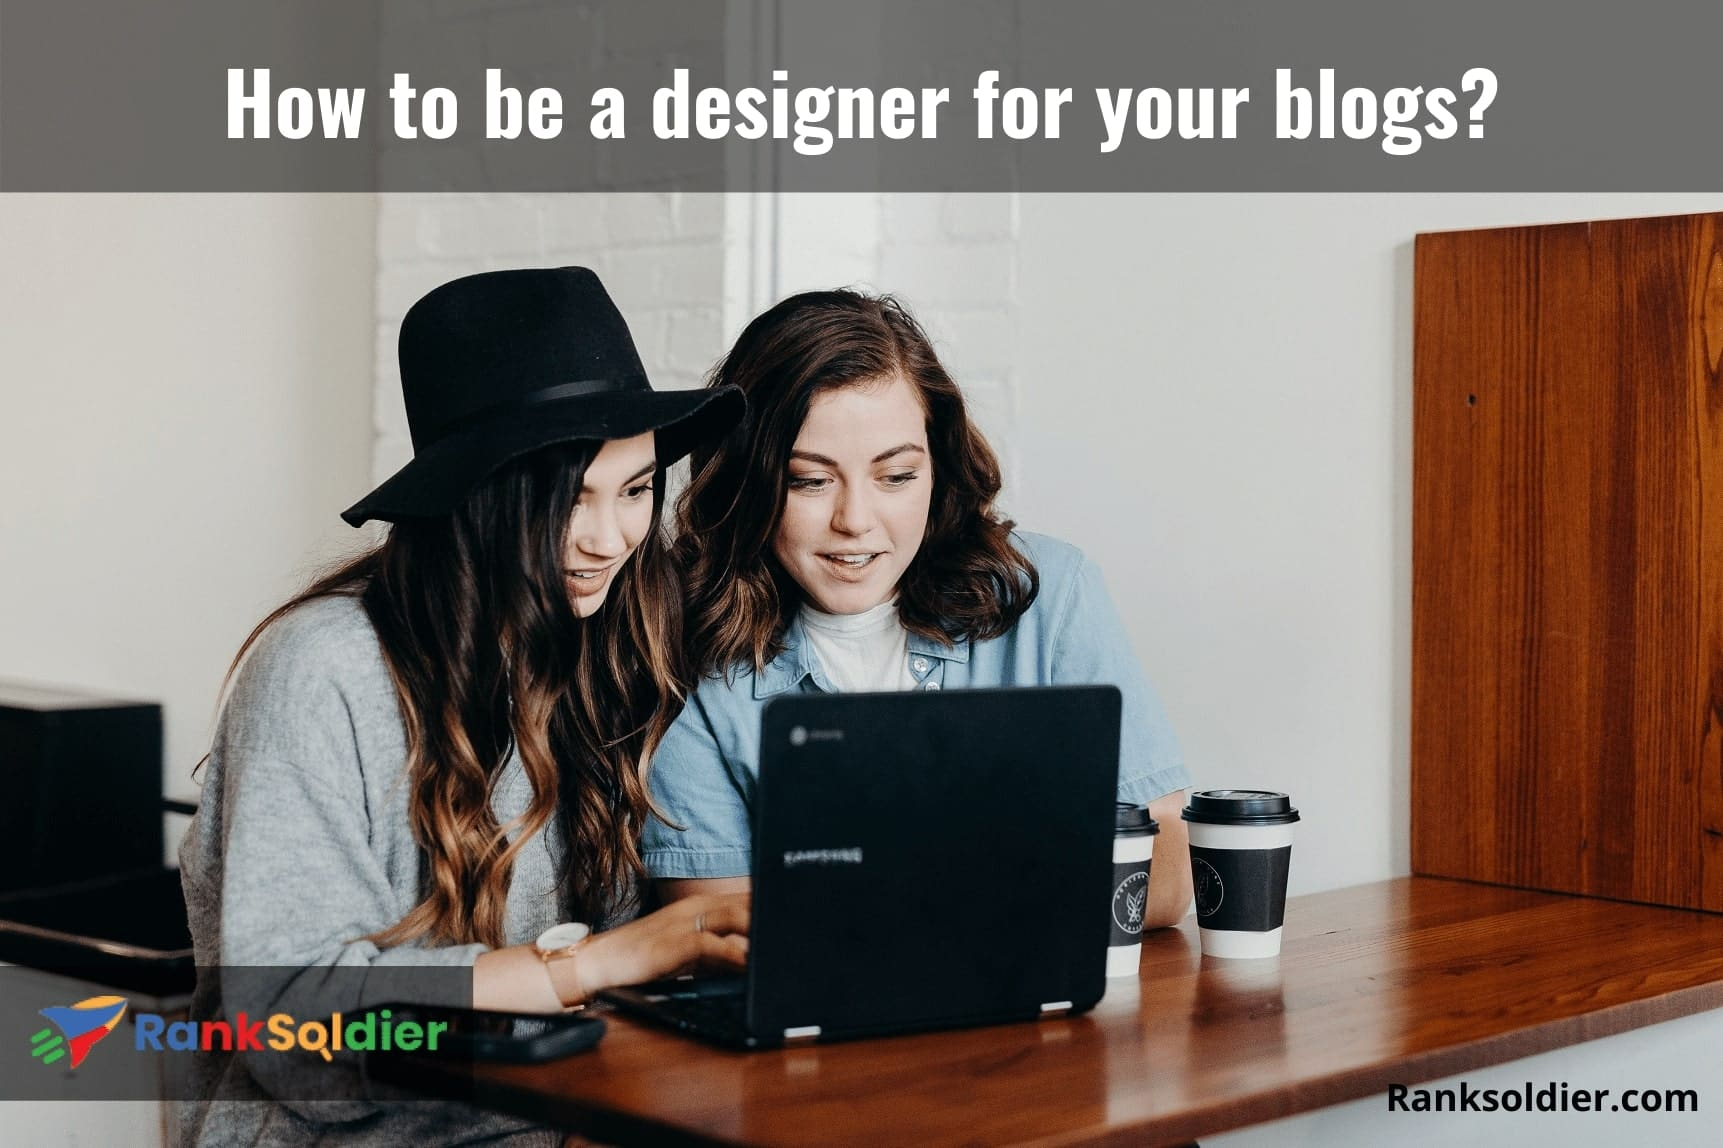 How to be a designer for your blogs